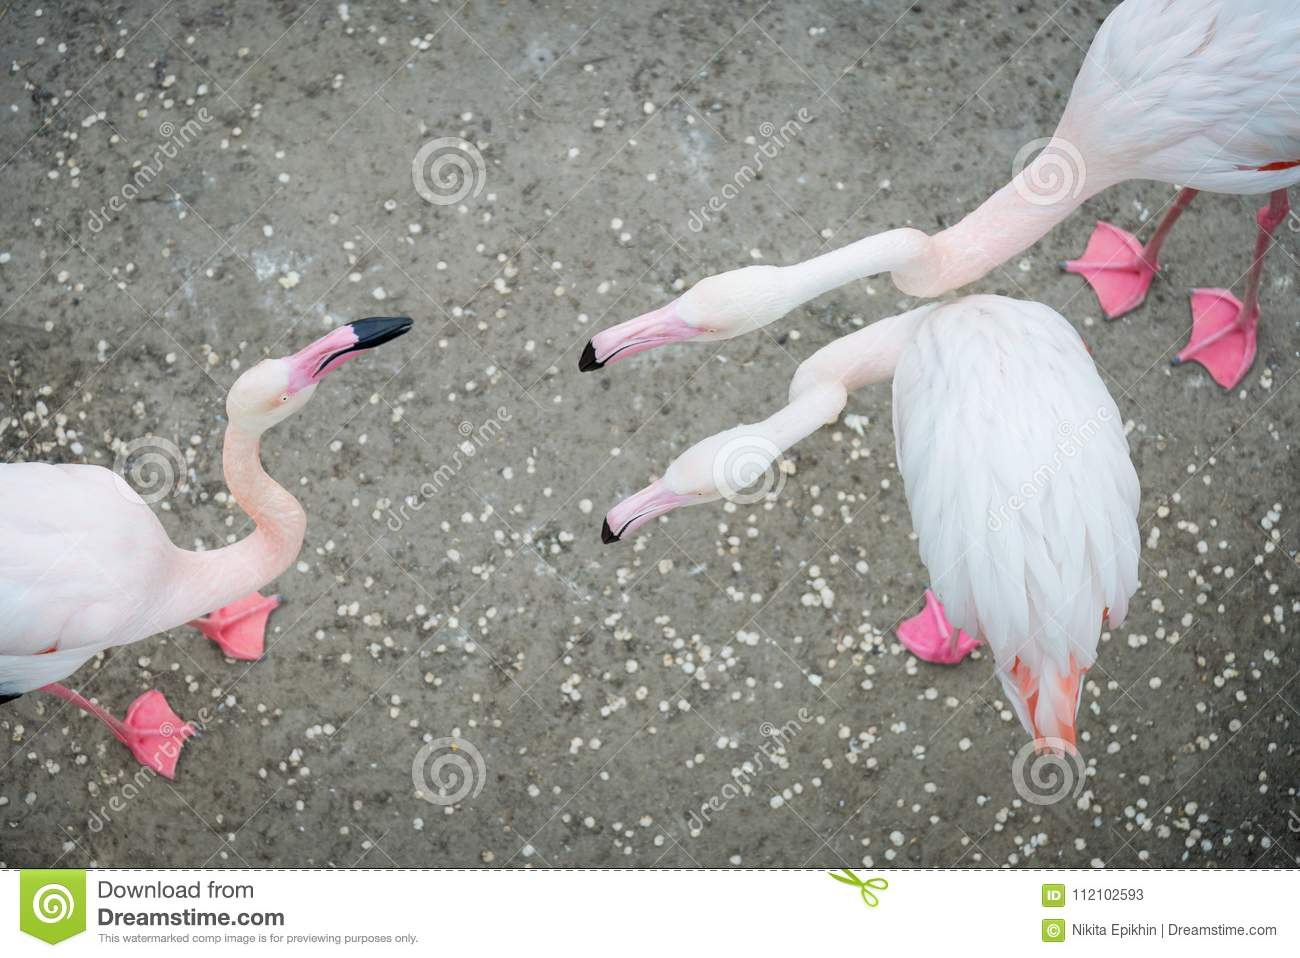 Flamingo Dating